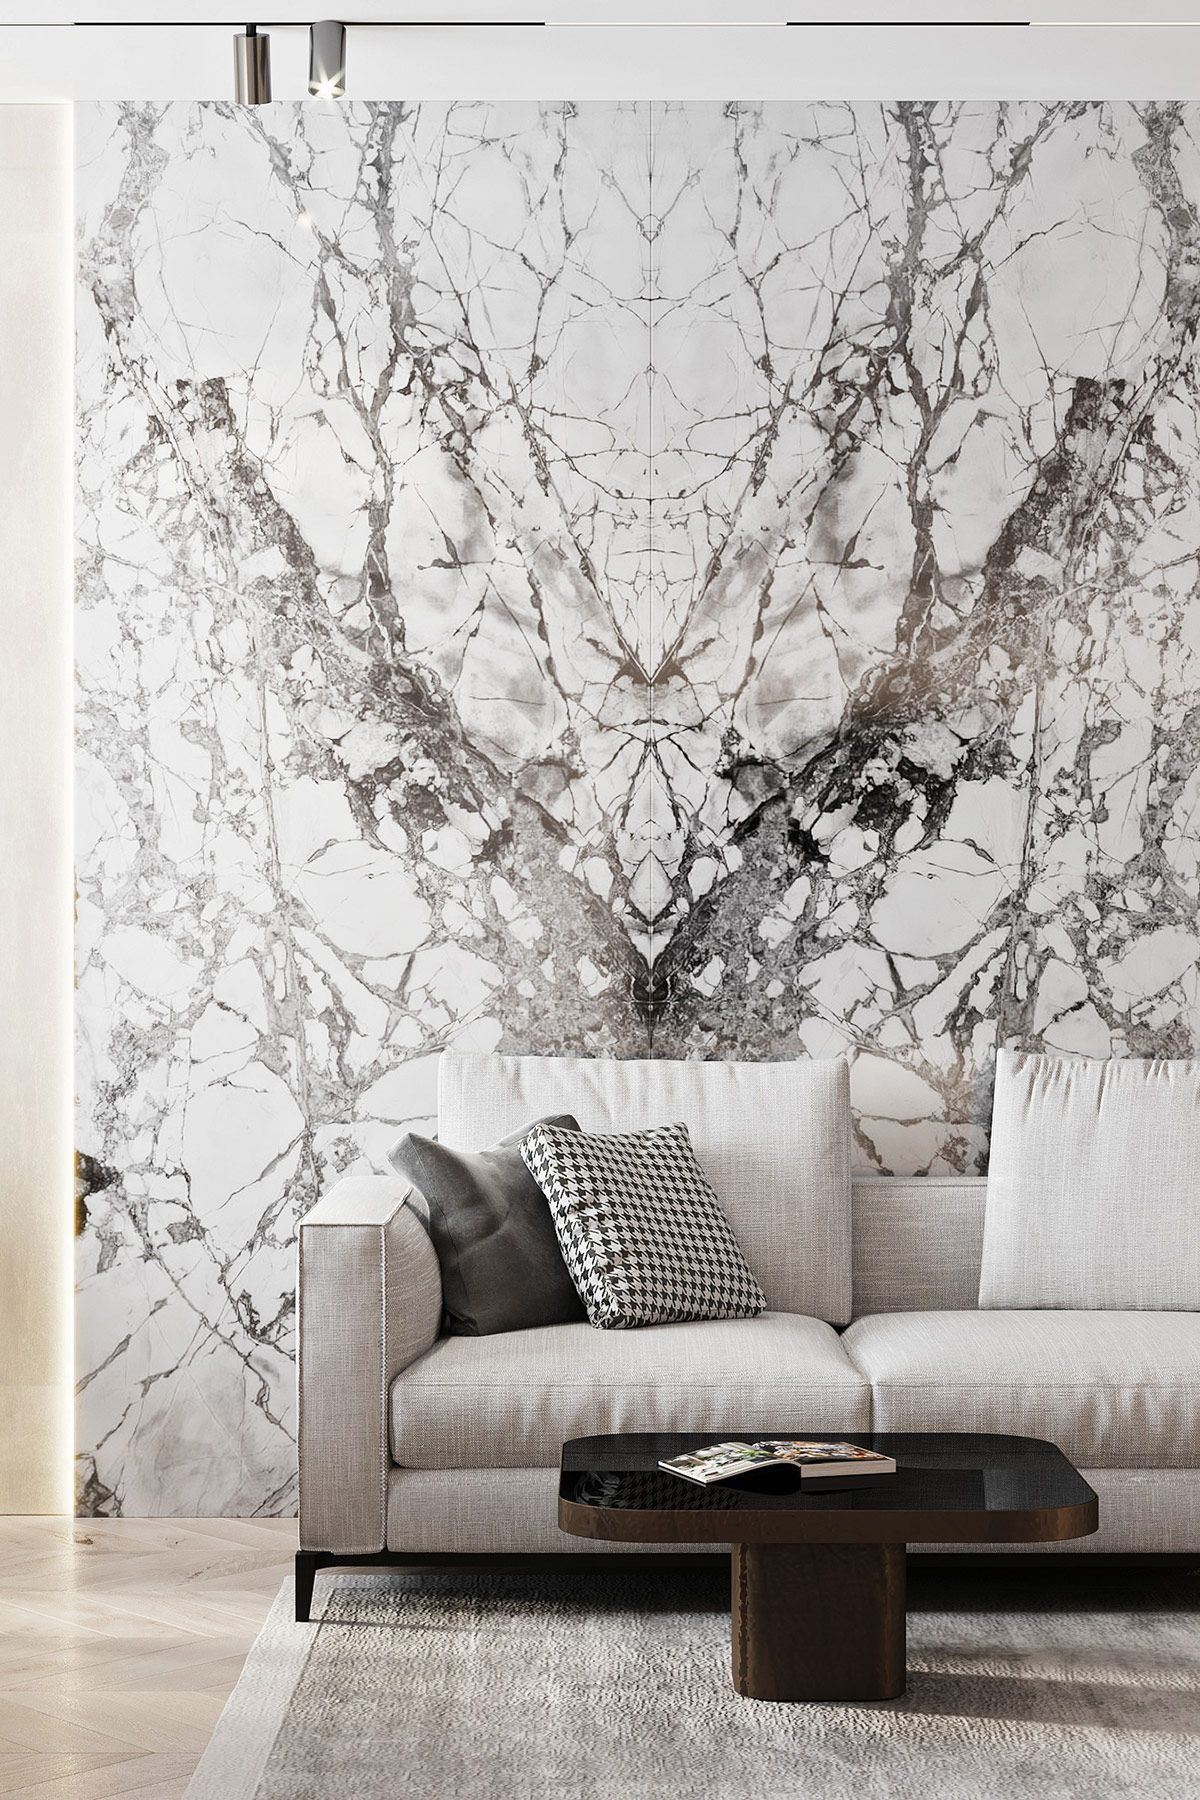 3 Luxe Home Interiors With White Marble U0026 Gold Accents